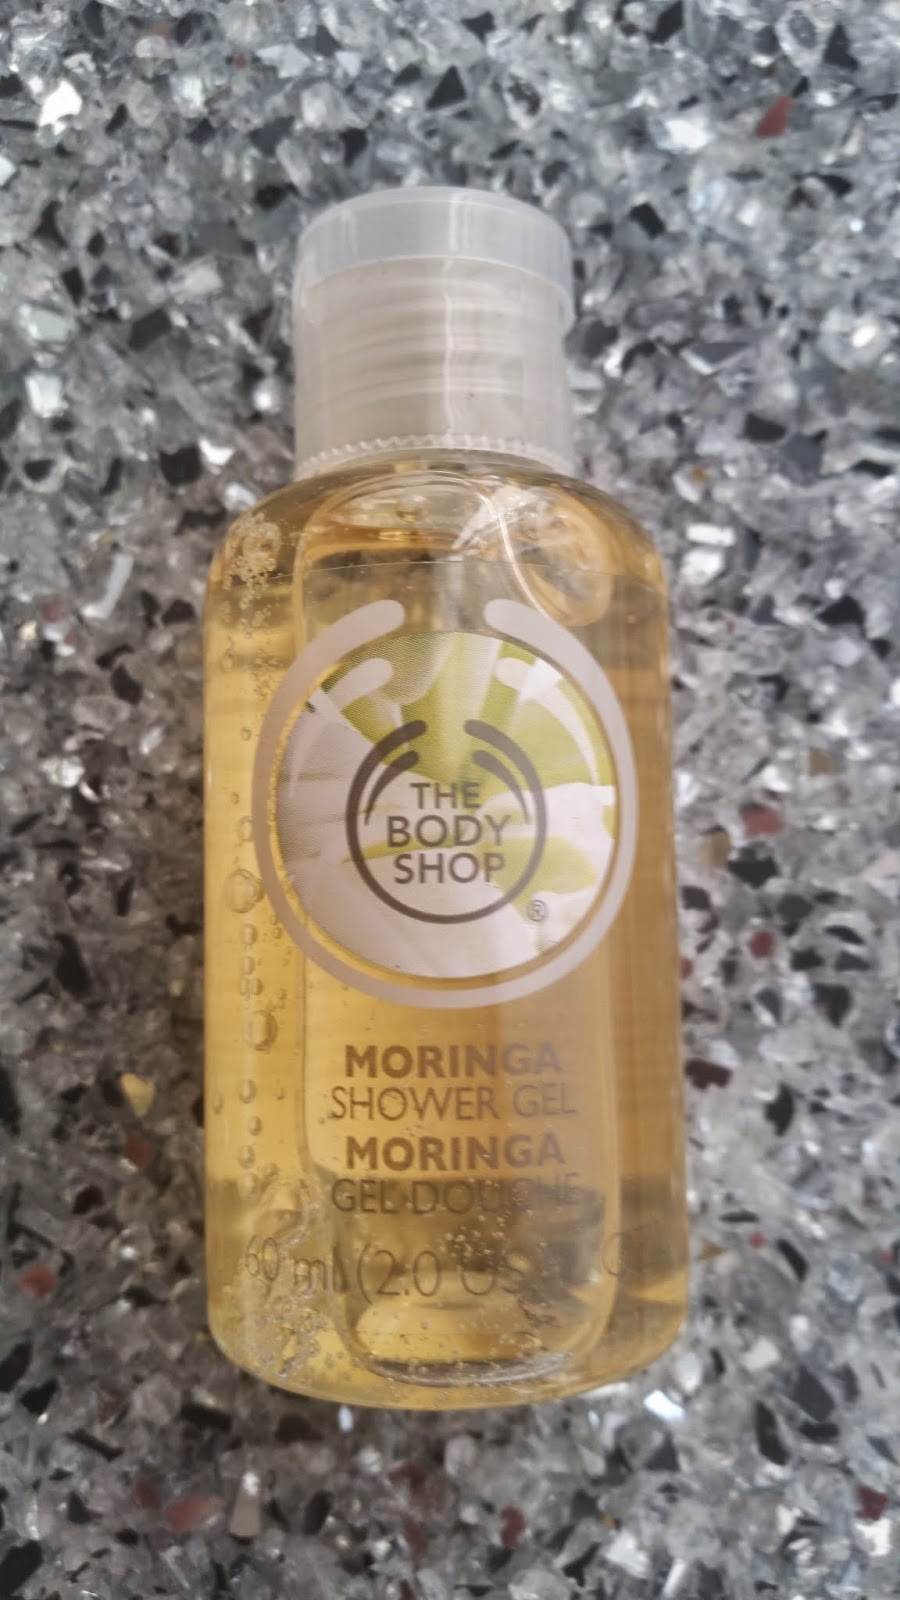 The Body Shop - Moringa Shower Gel - www.annitschkasblog.de